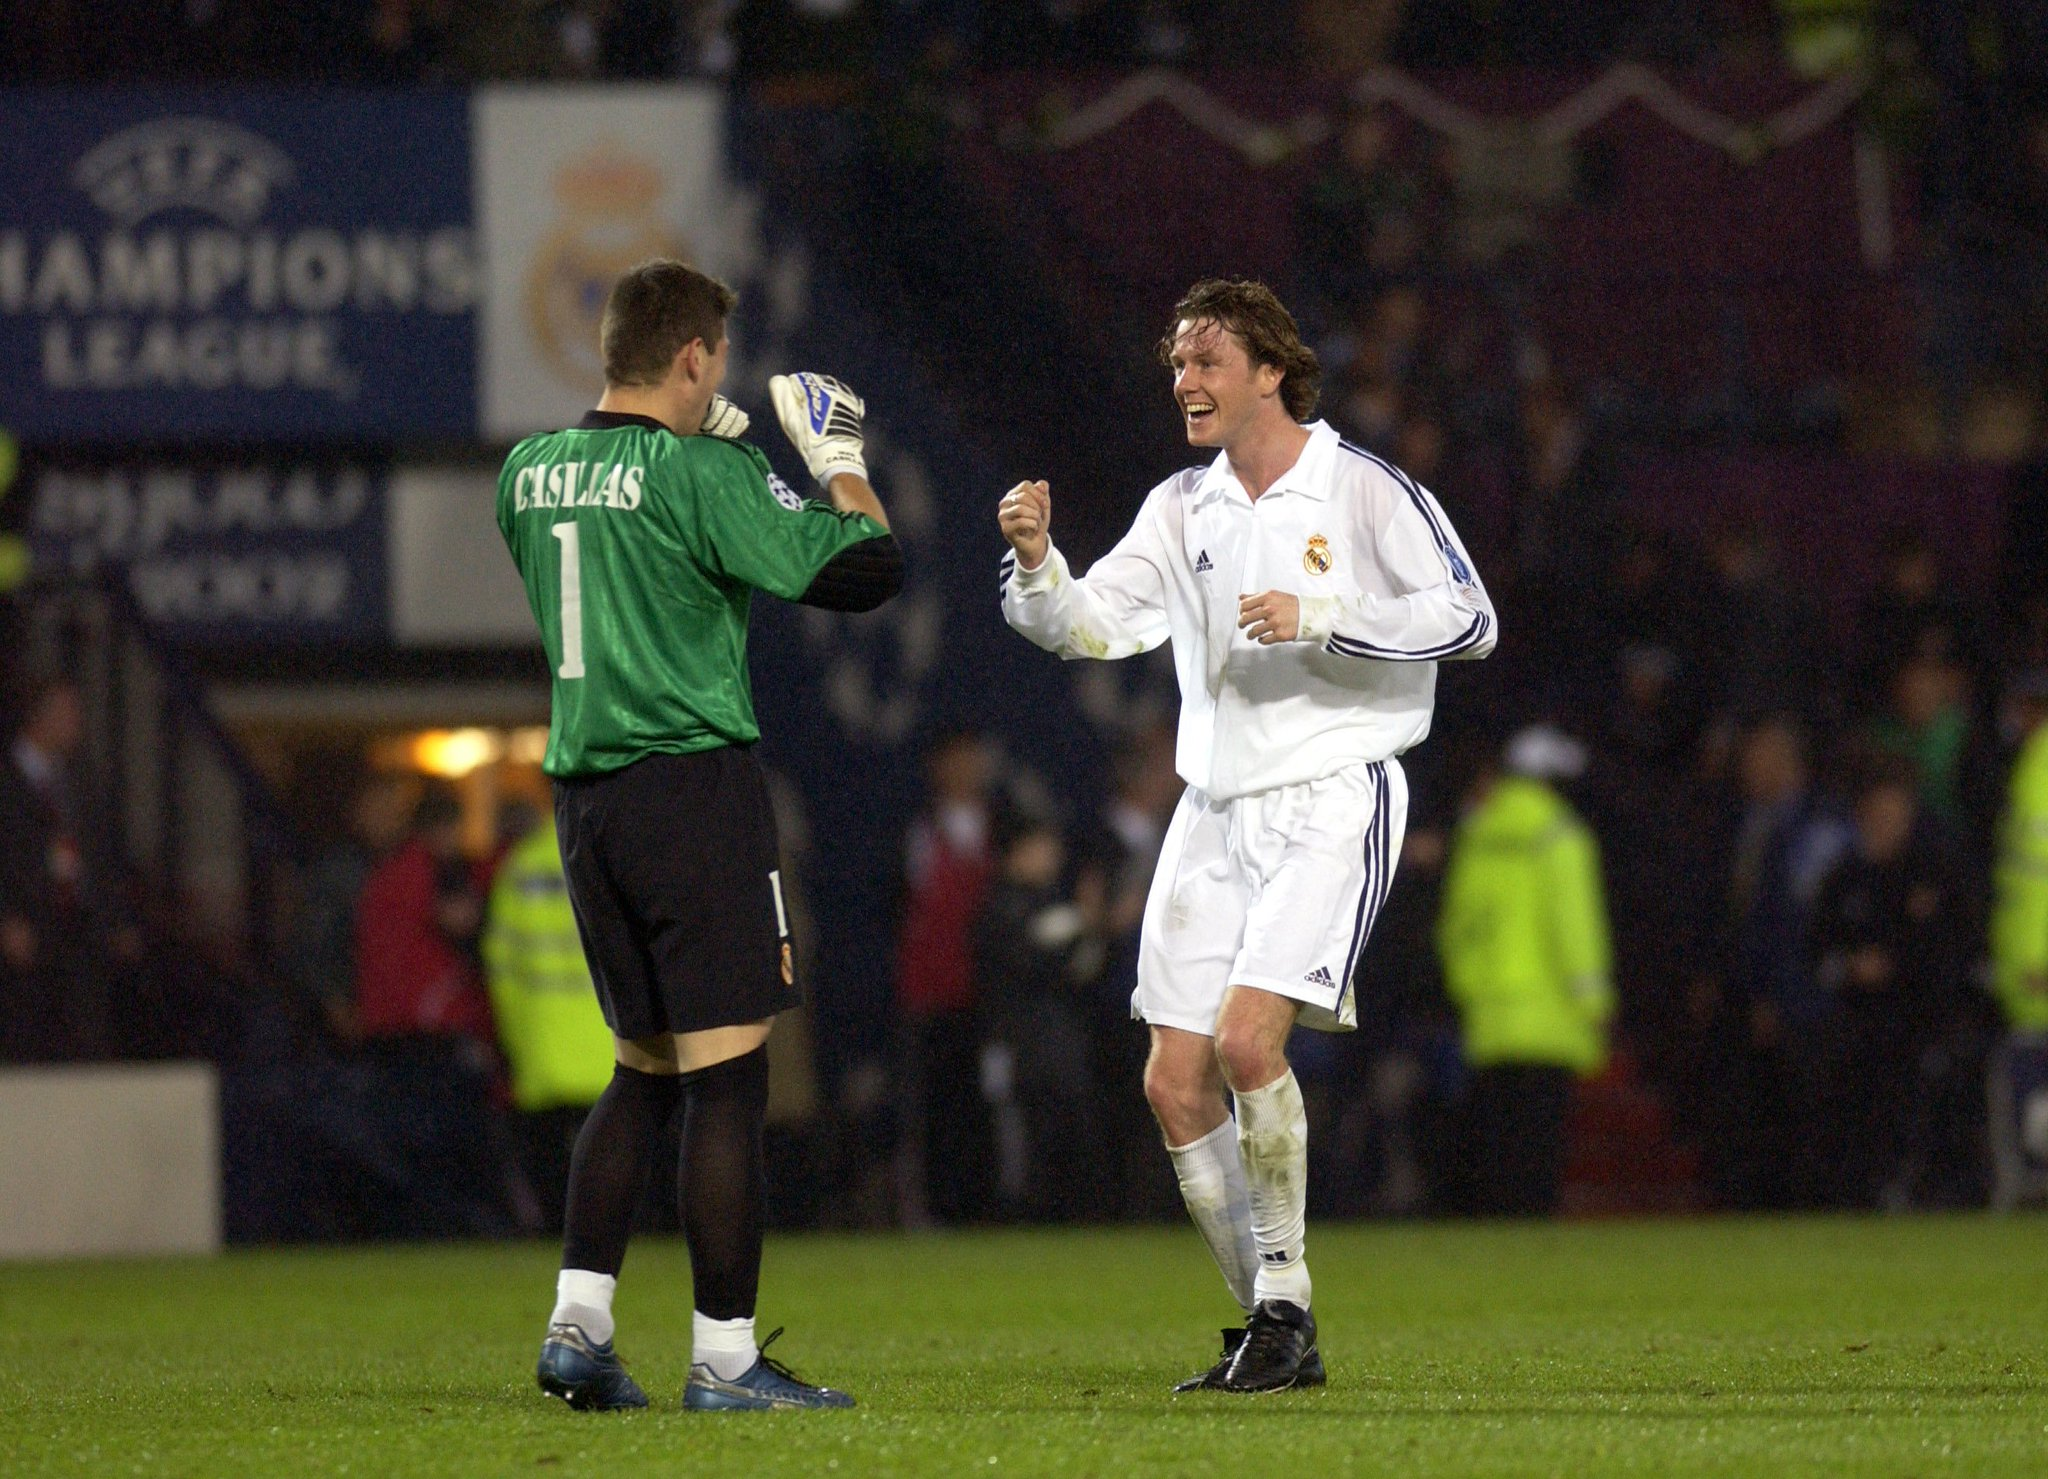 Happy birthday, two-time winner & former Real Madrid star Steve McManaman!